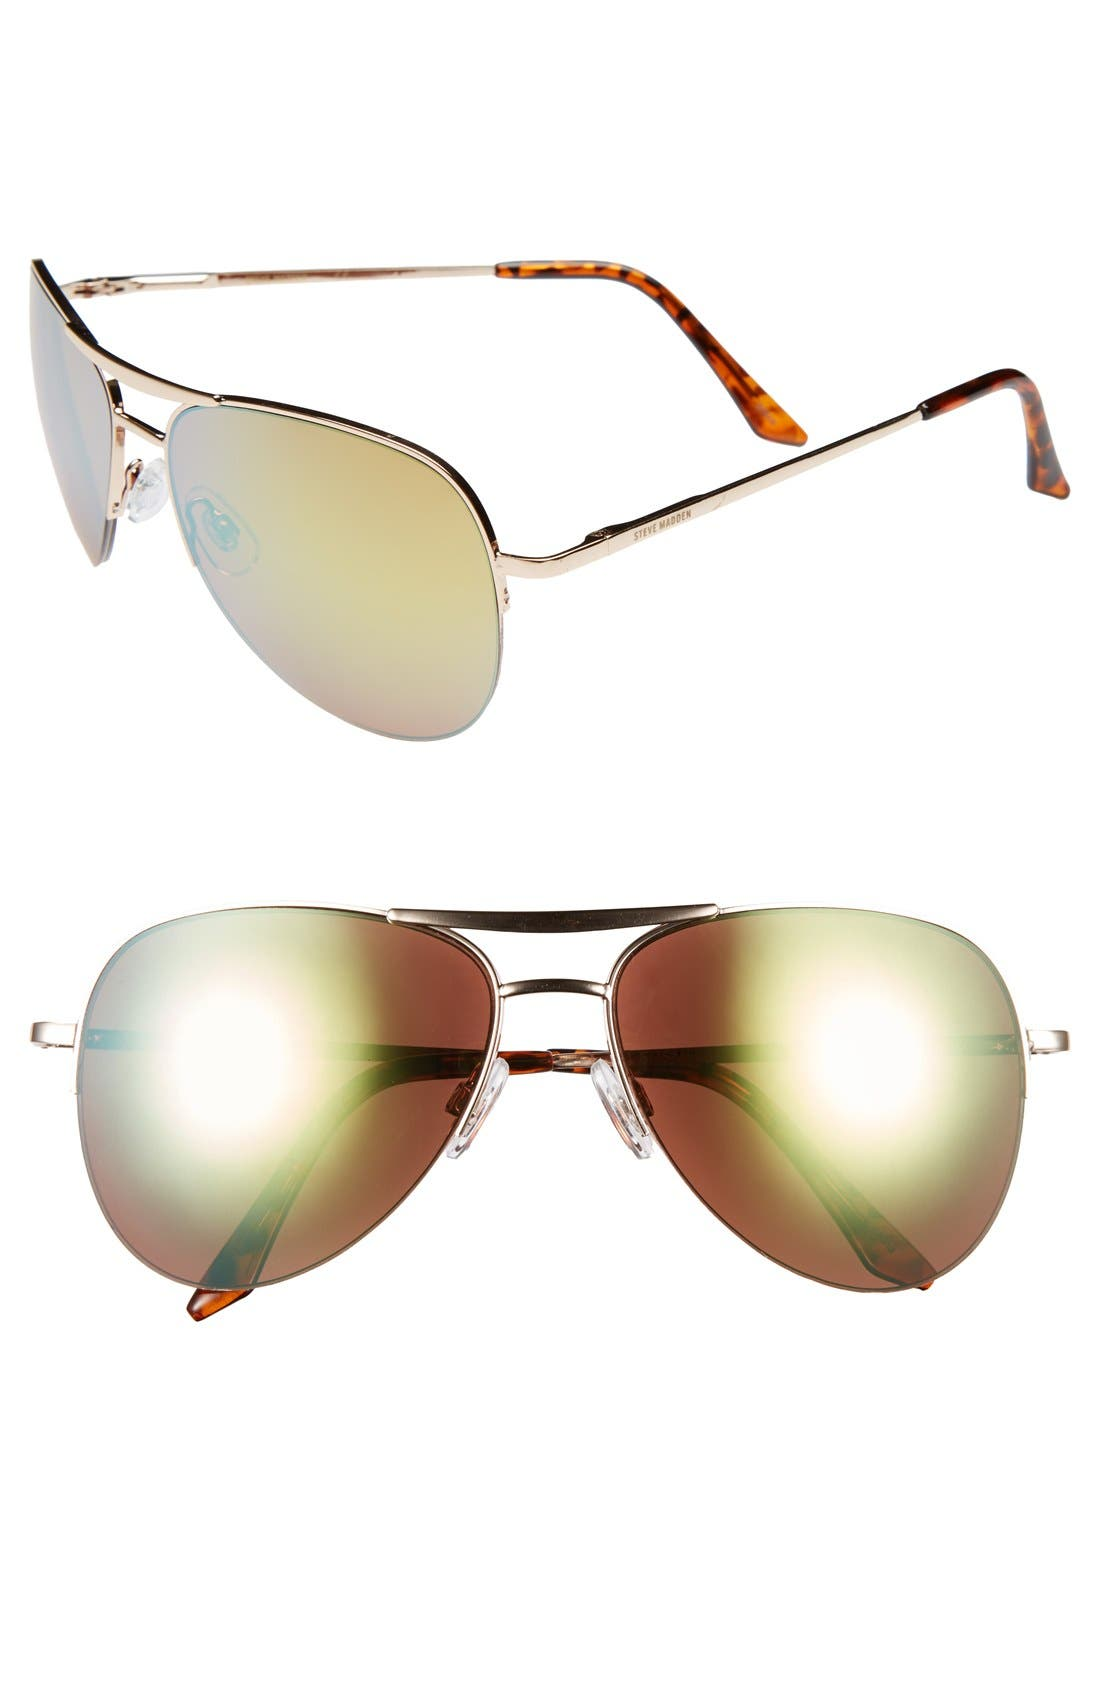 Alternate Image 1 Selected - Steve Madden Semi Rimless 55mm Aviator Sunglasses